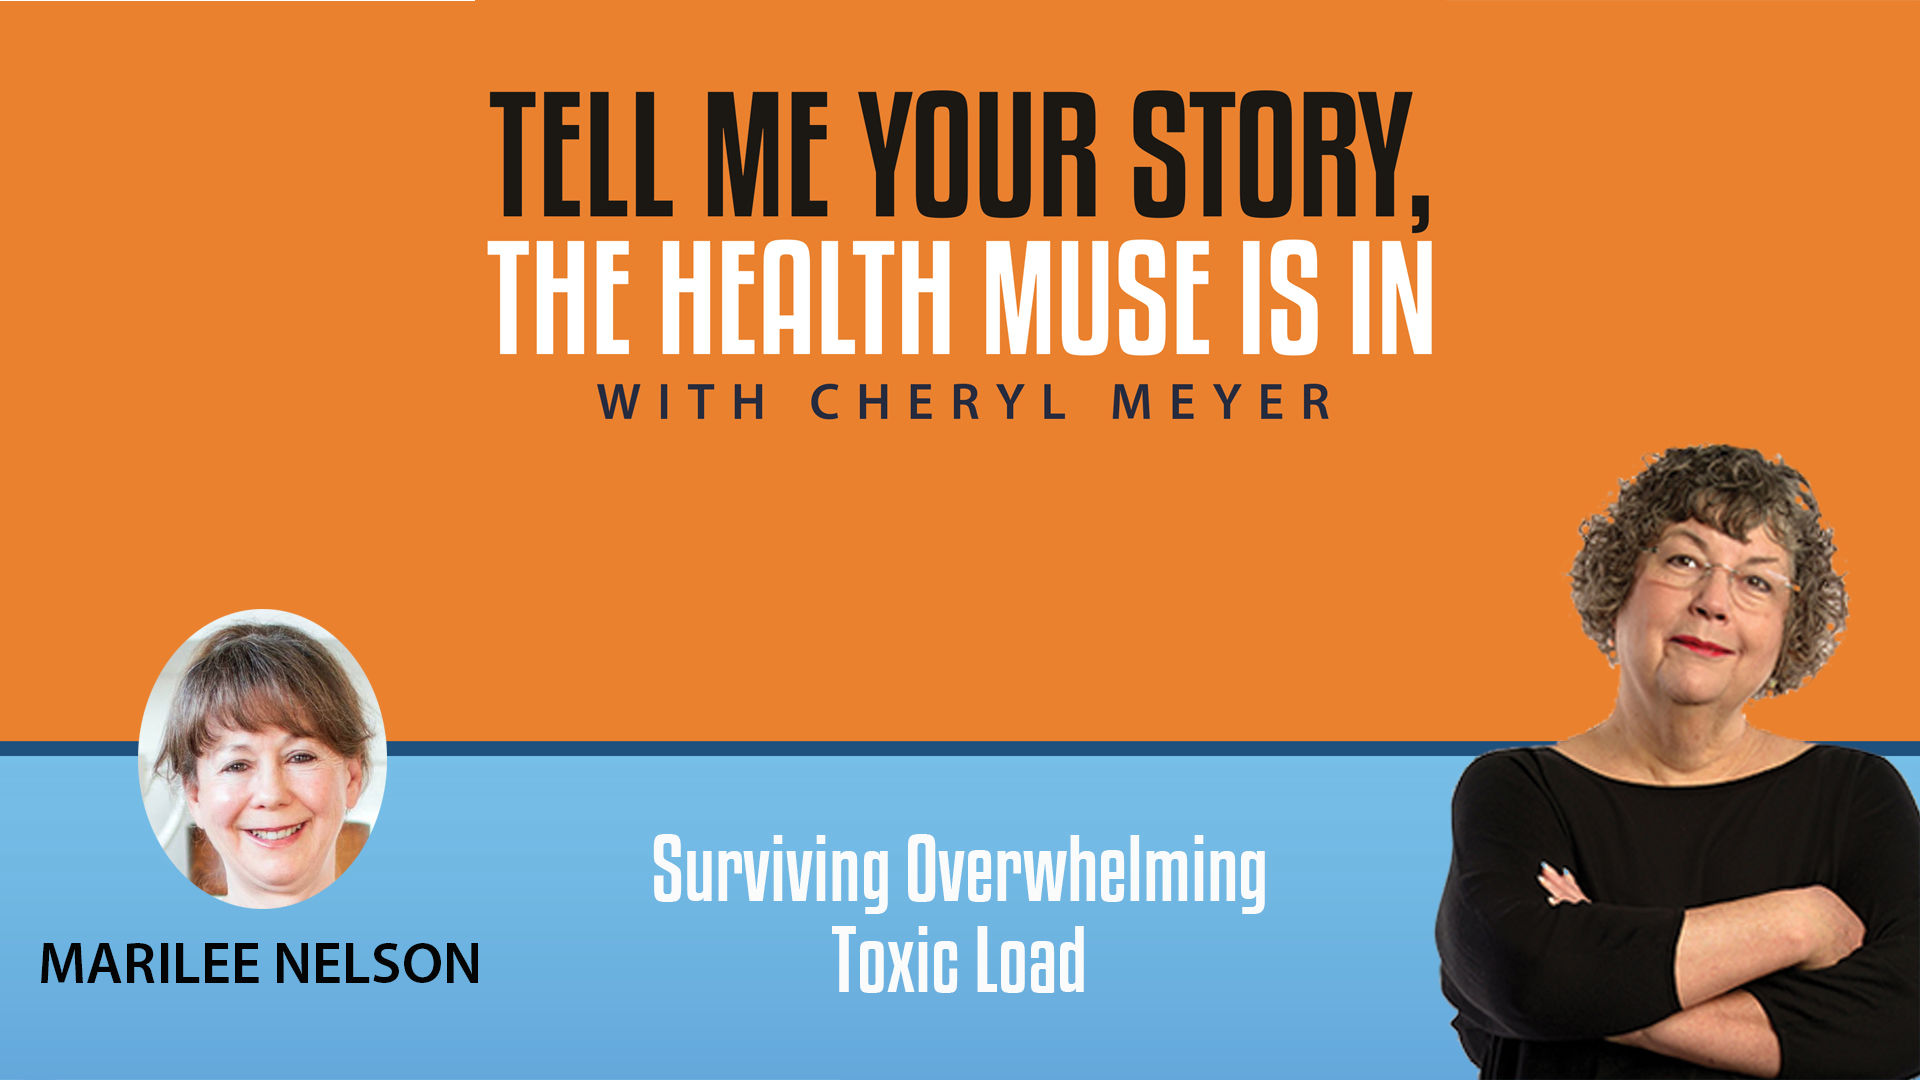 Tell Me Your Story- Marilee Nelson- Environmental Toxins